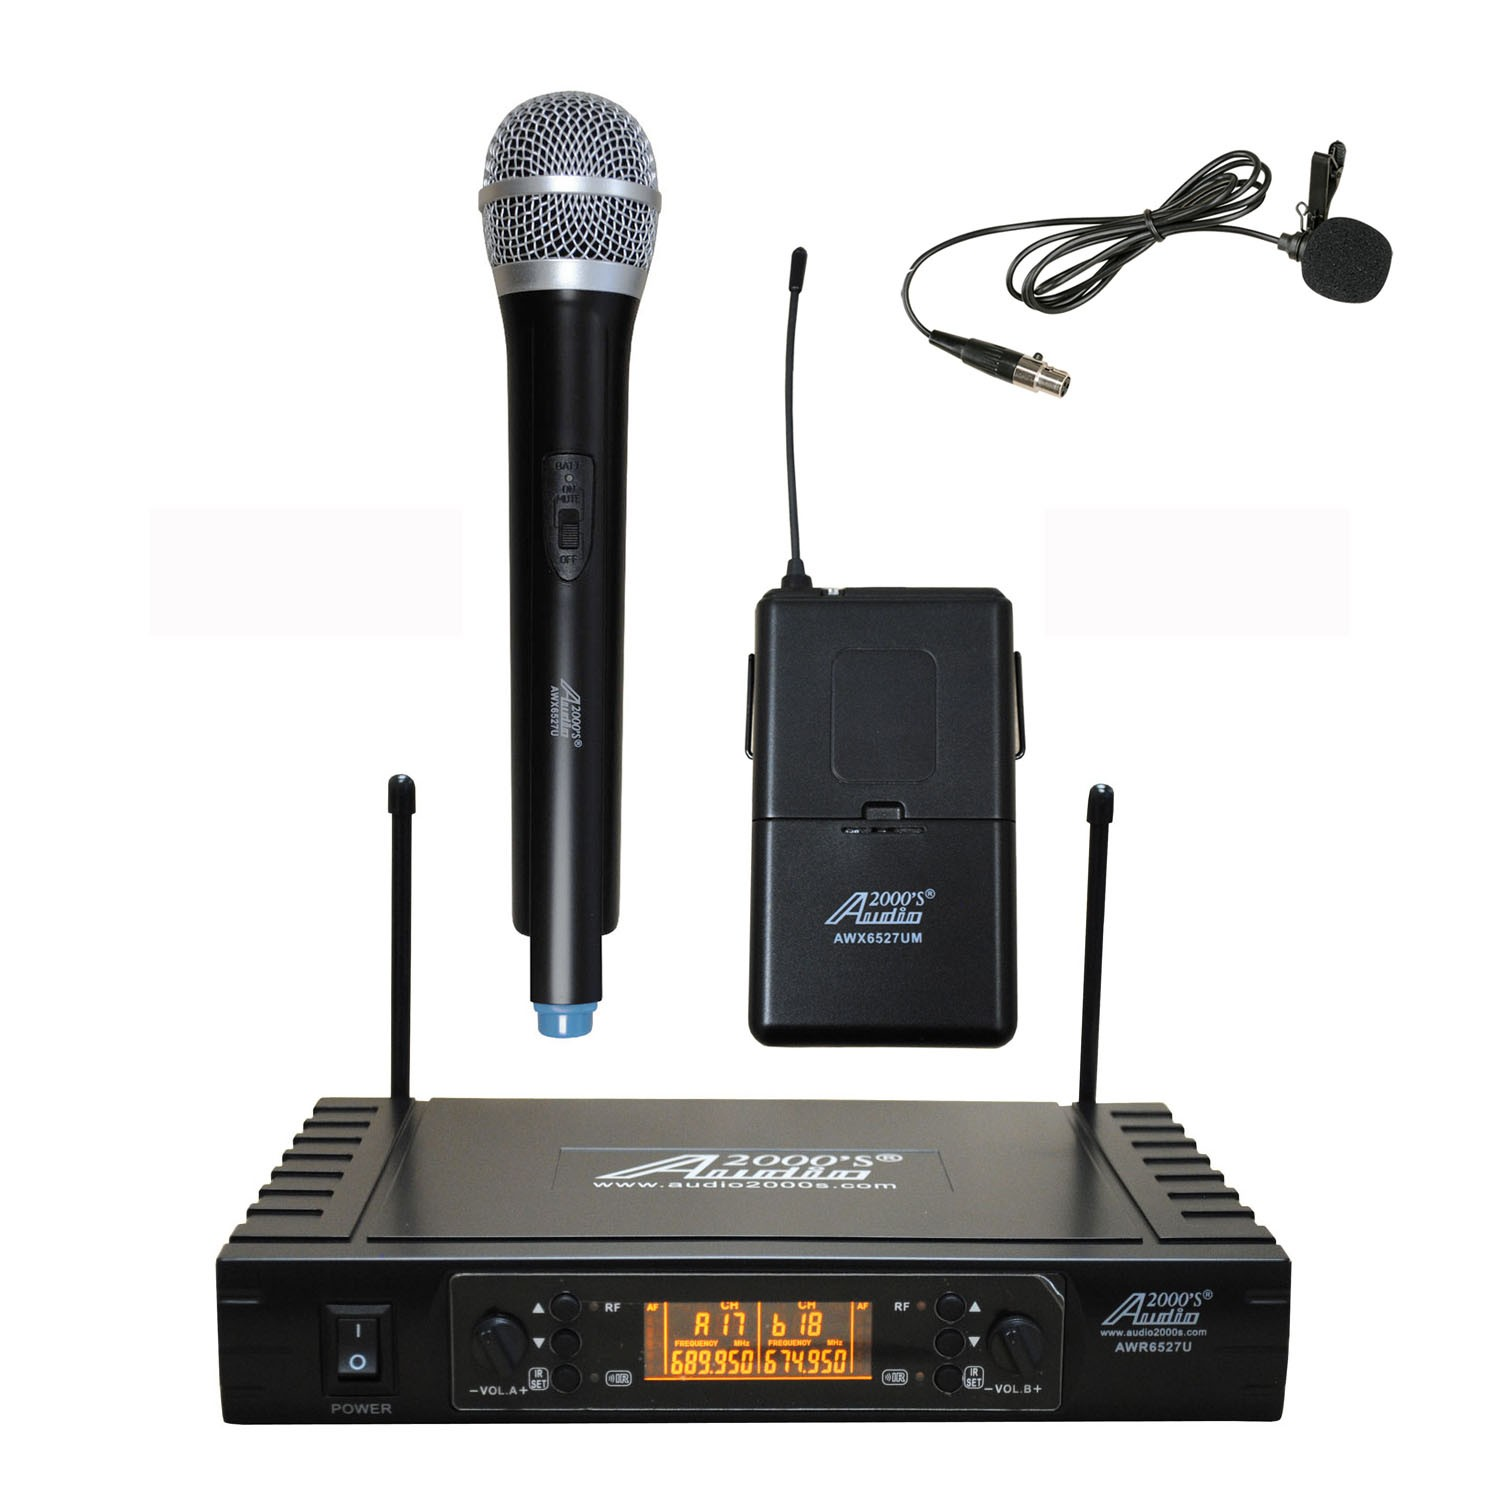 Audio2000s AWM6527UL UHF Wireless Handheld and Lapel Combo Microphone System with 100 Selectable Frequency